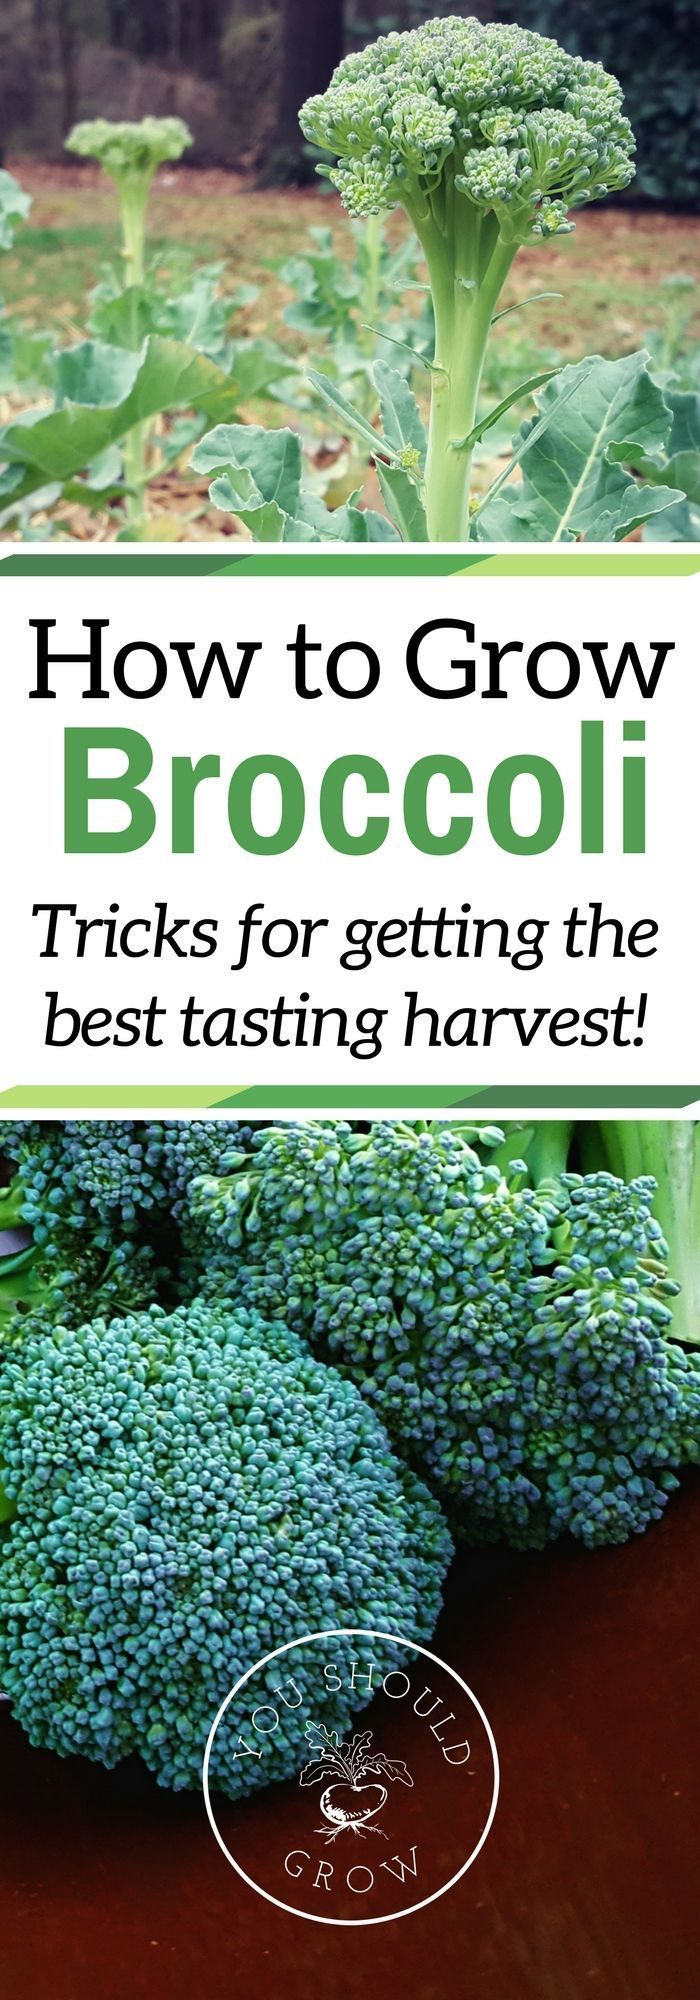 If you've had trouble growing broccoli before, read these tips for getting a...